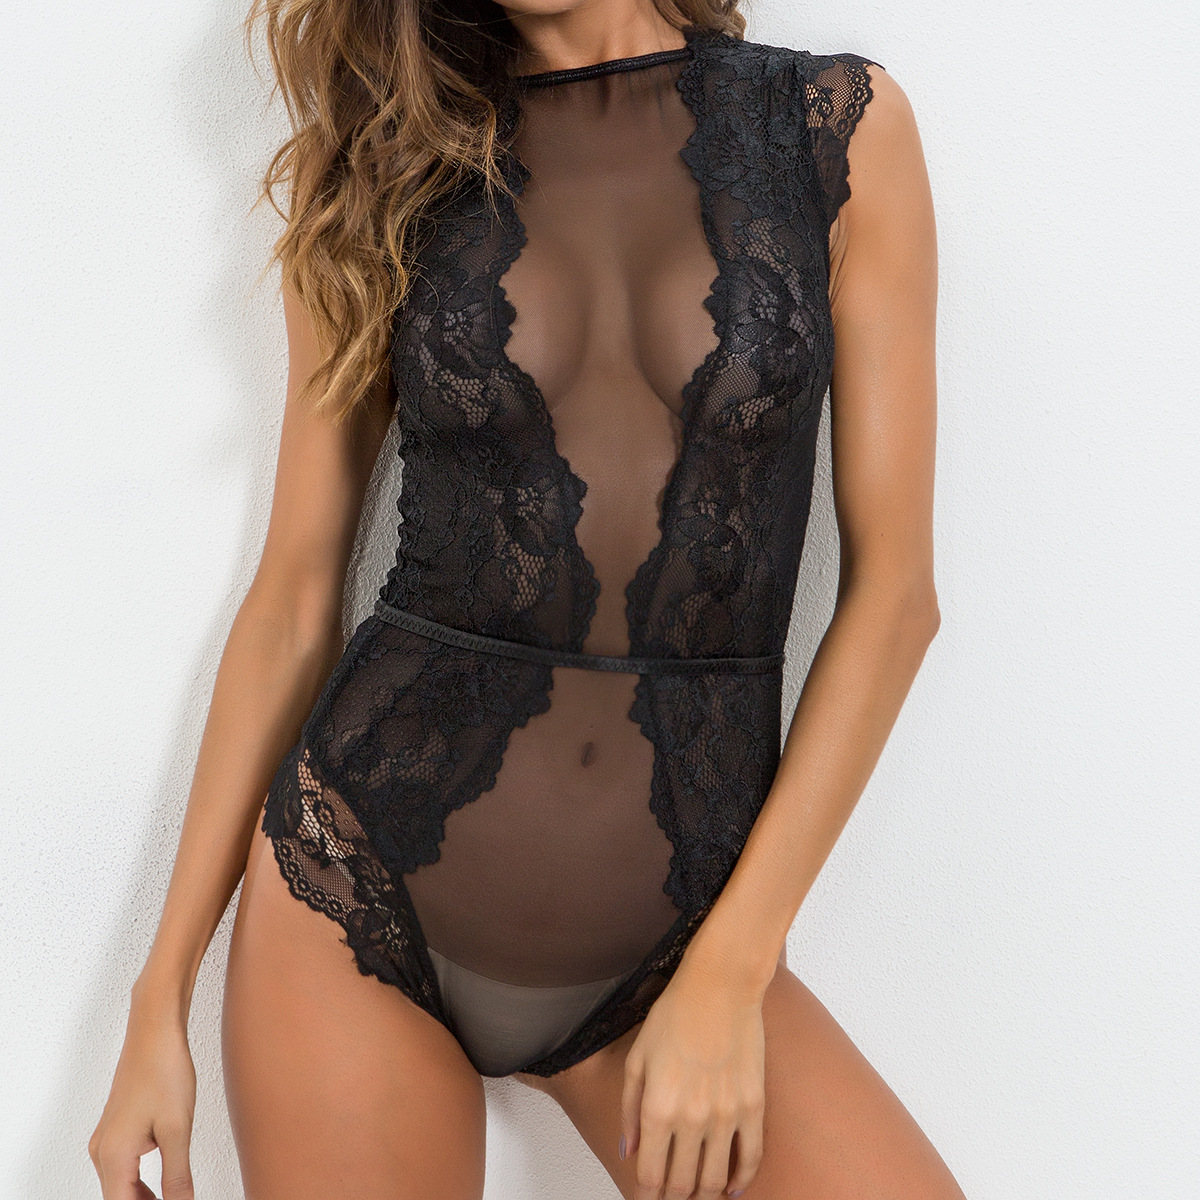 Women Bodysuit Hollow See-Through Solid Playsuit 2019 Summer Fashion Sexy Ladies Lace Patchwork Temptation Bodysuits